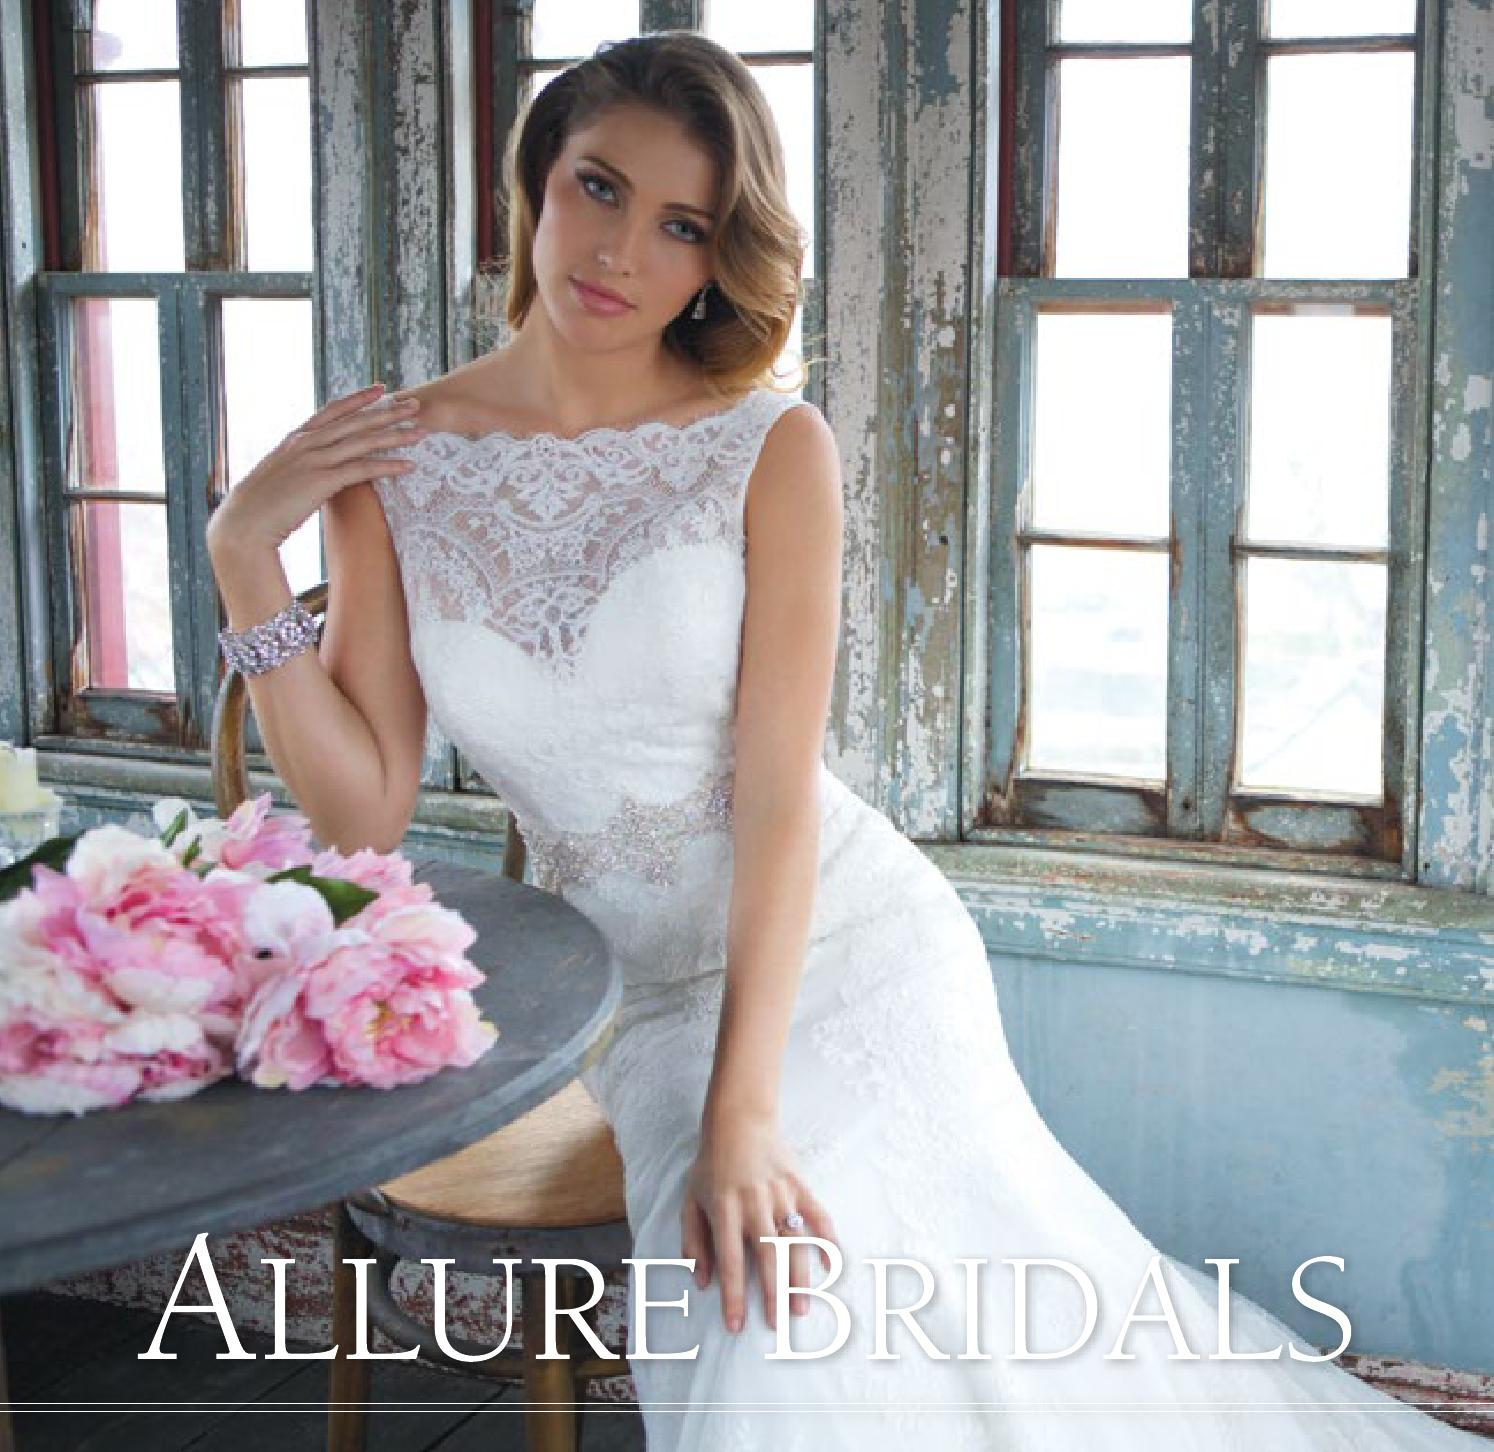 Allure Bridals Style 2700: Allure Bridals Spring Look Book By Allure Bridals